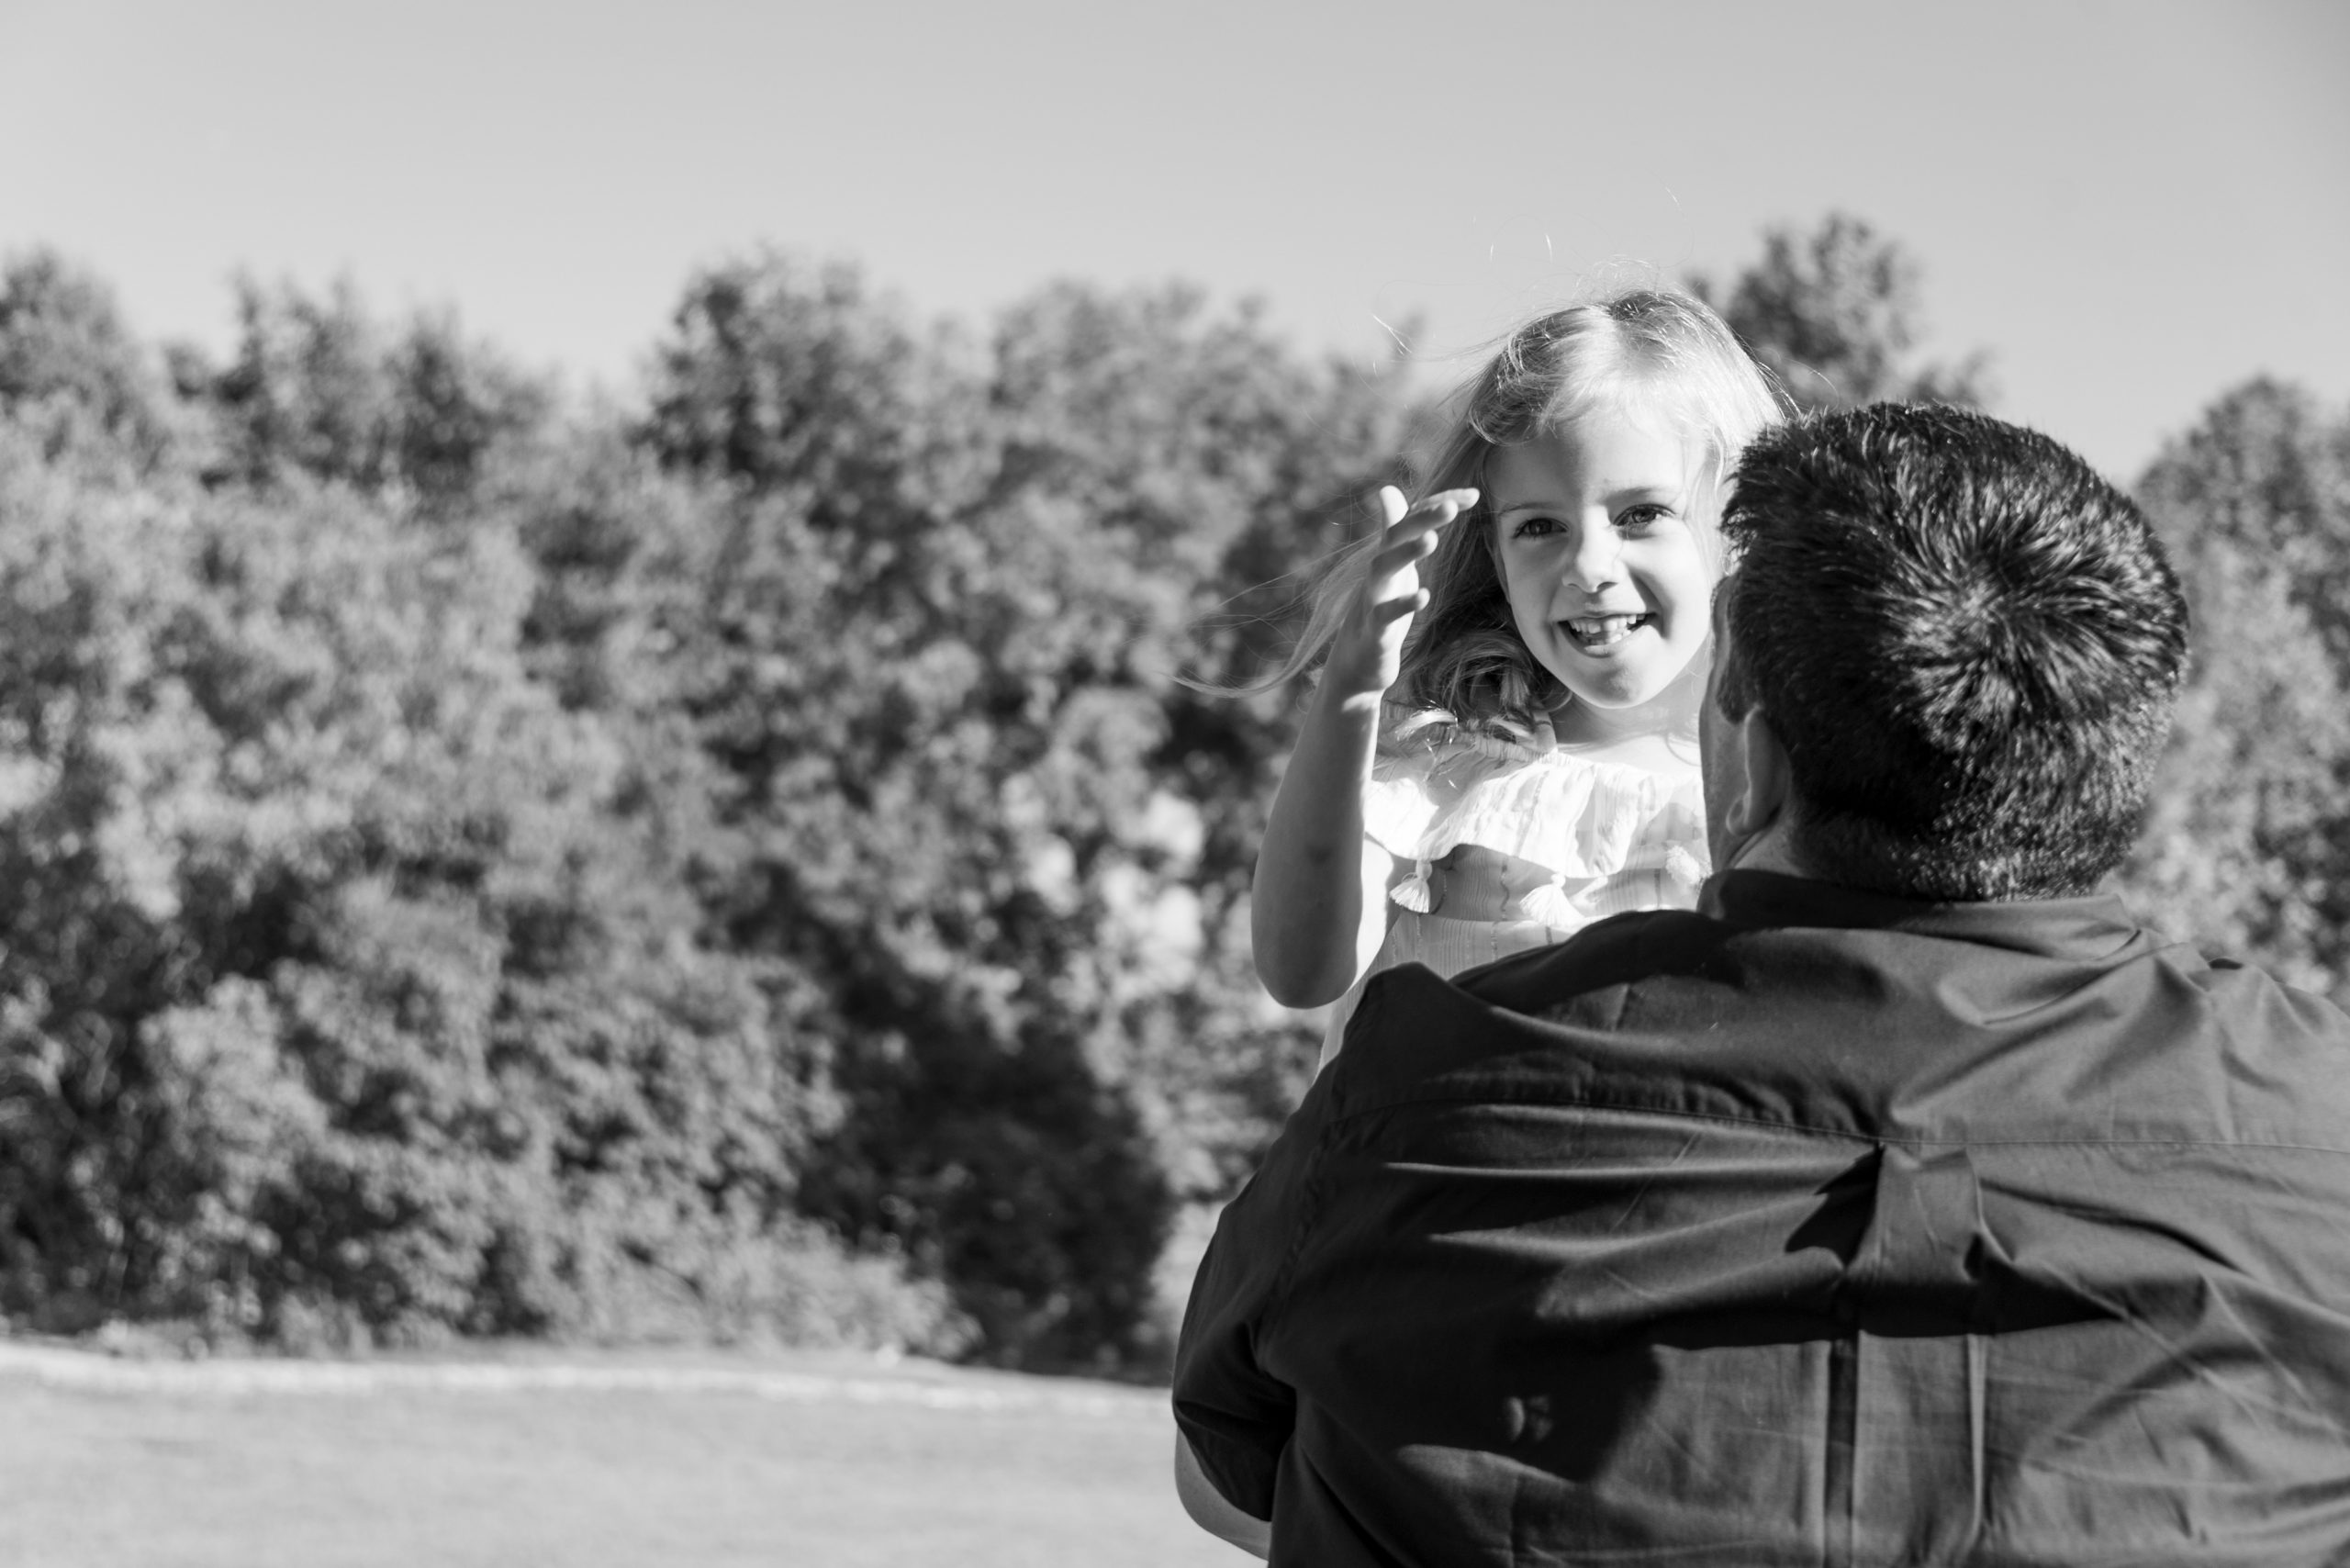 Family Portraits at Wind Point Lighthouse